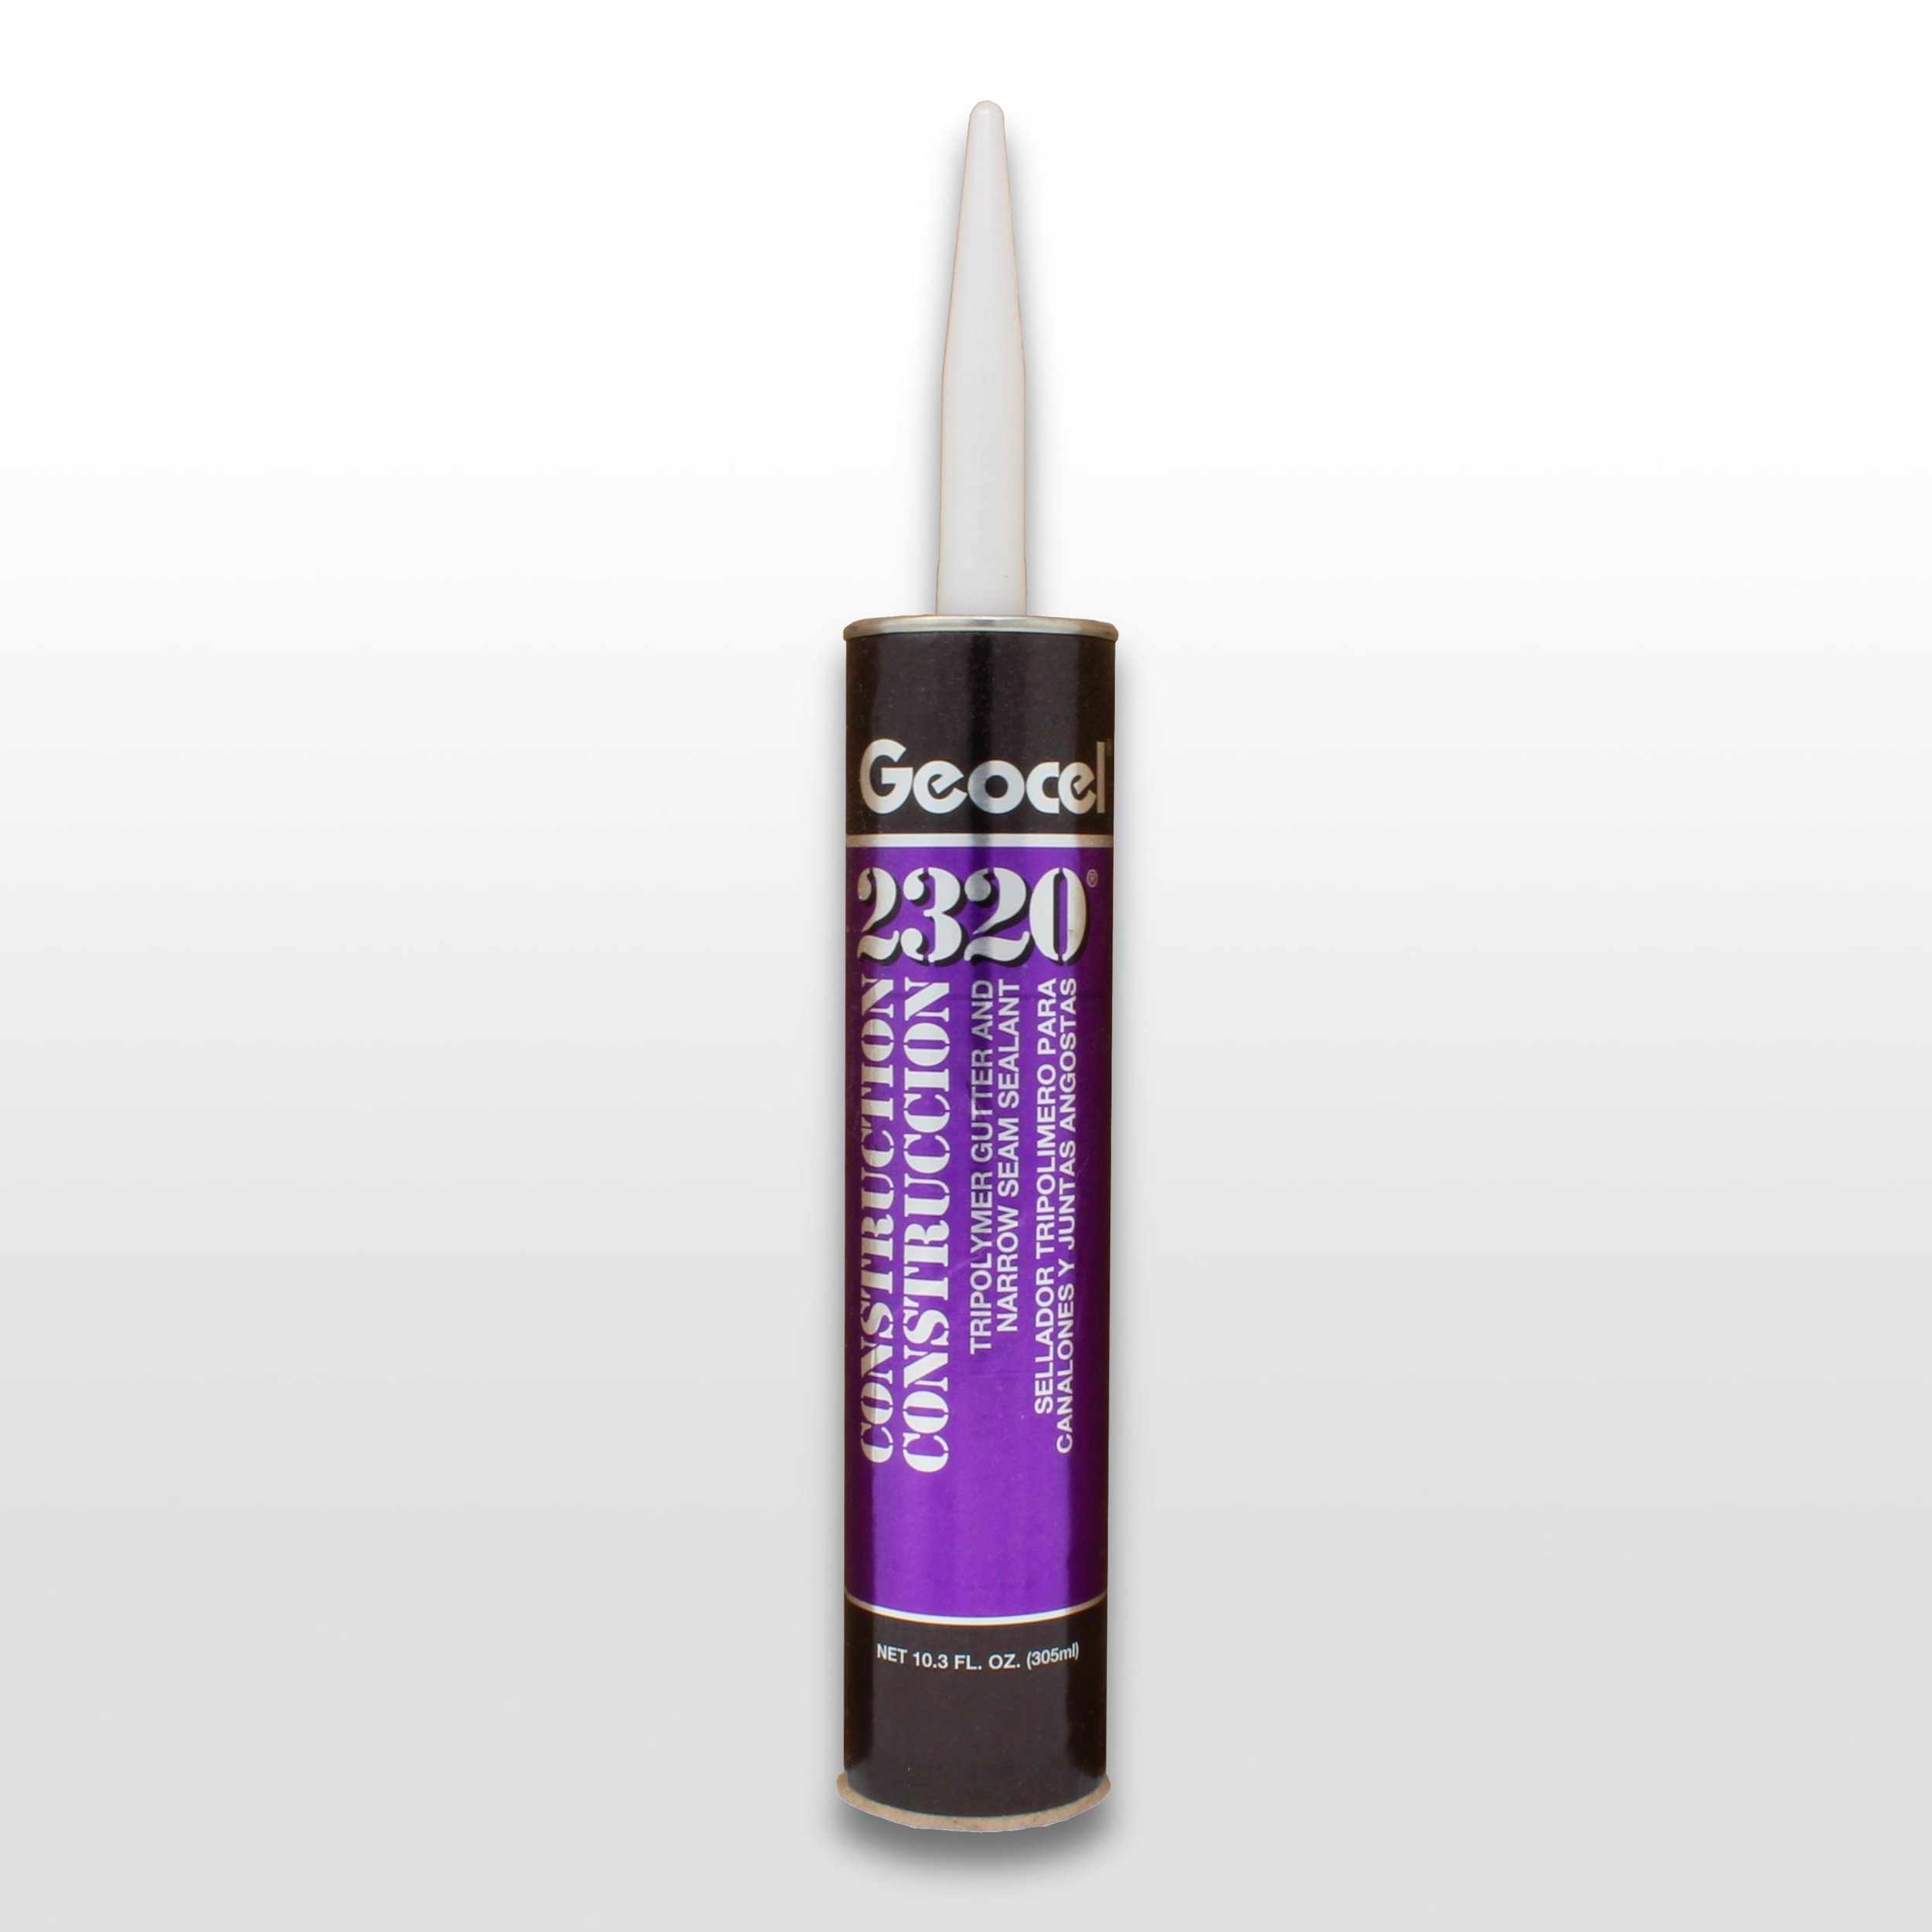 Geocel2320 Sealant  (24 pcs/carton)   Available in clear and white